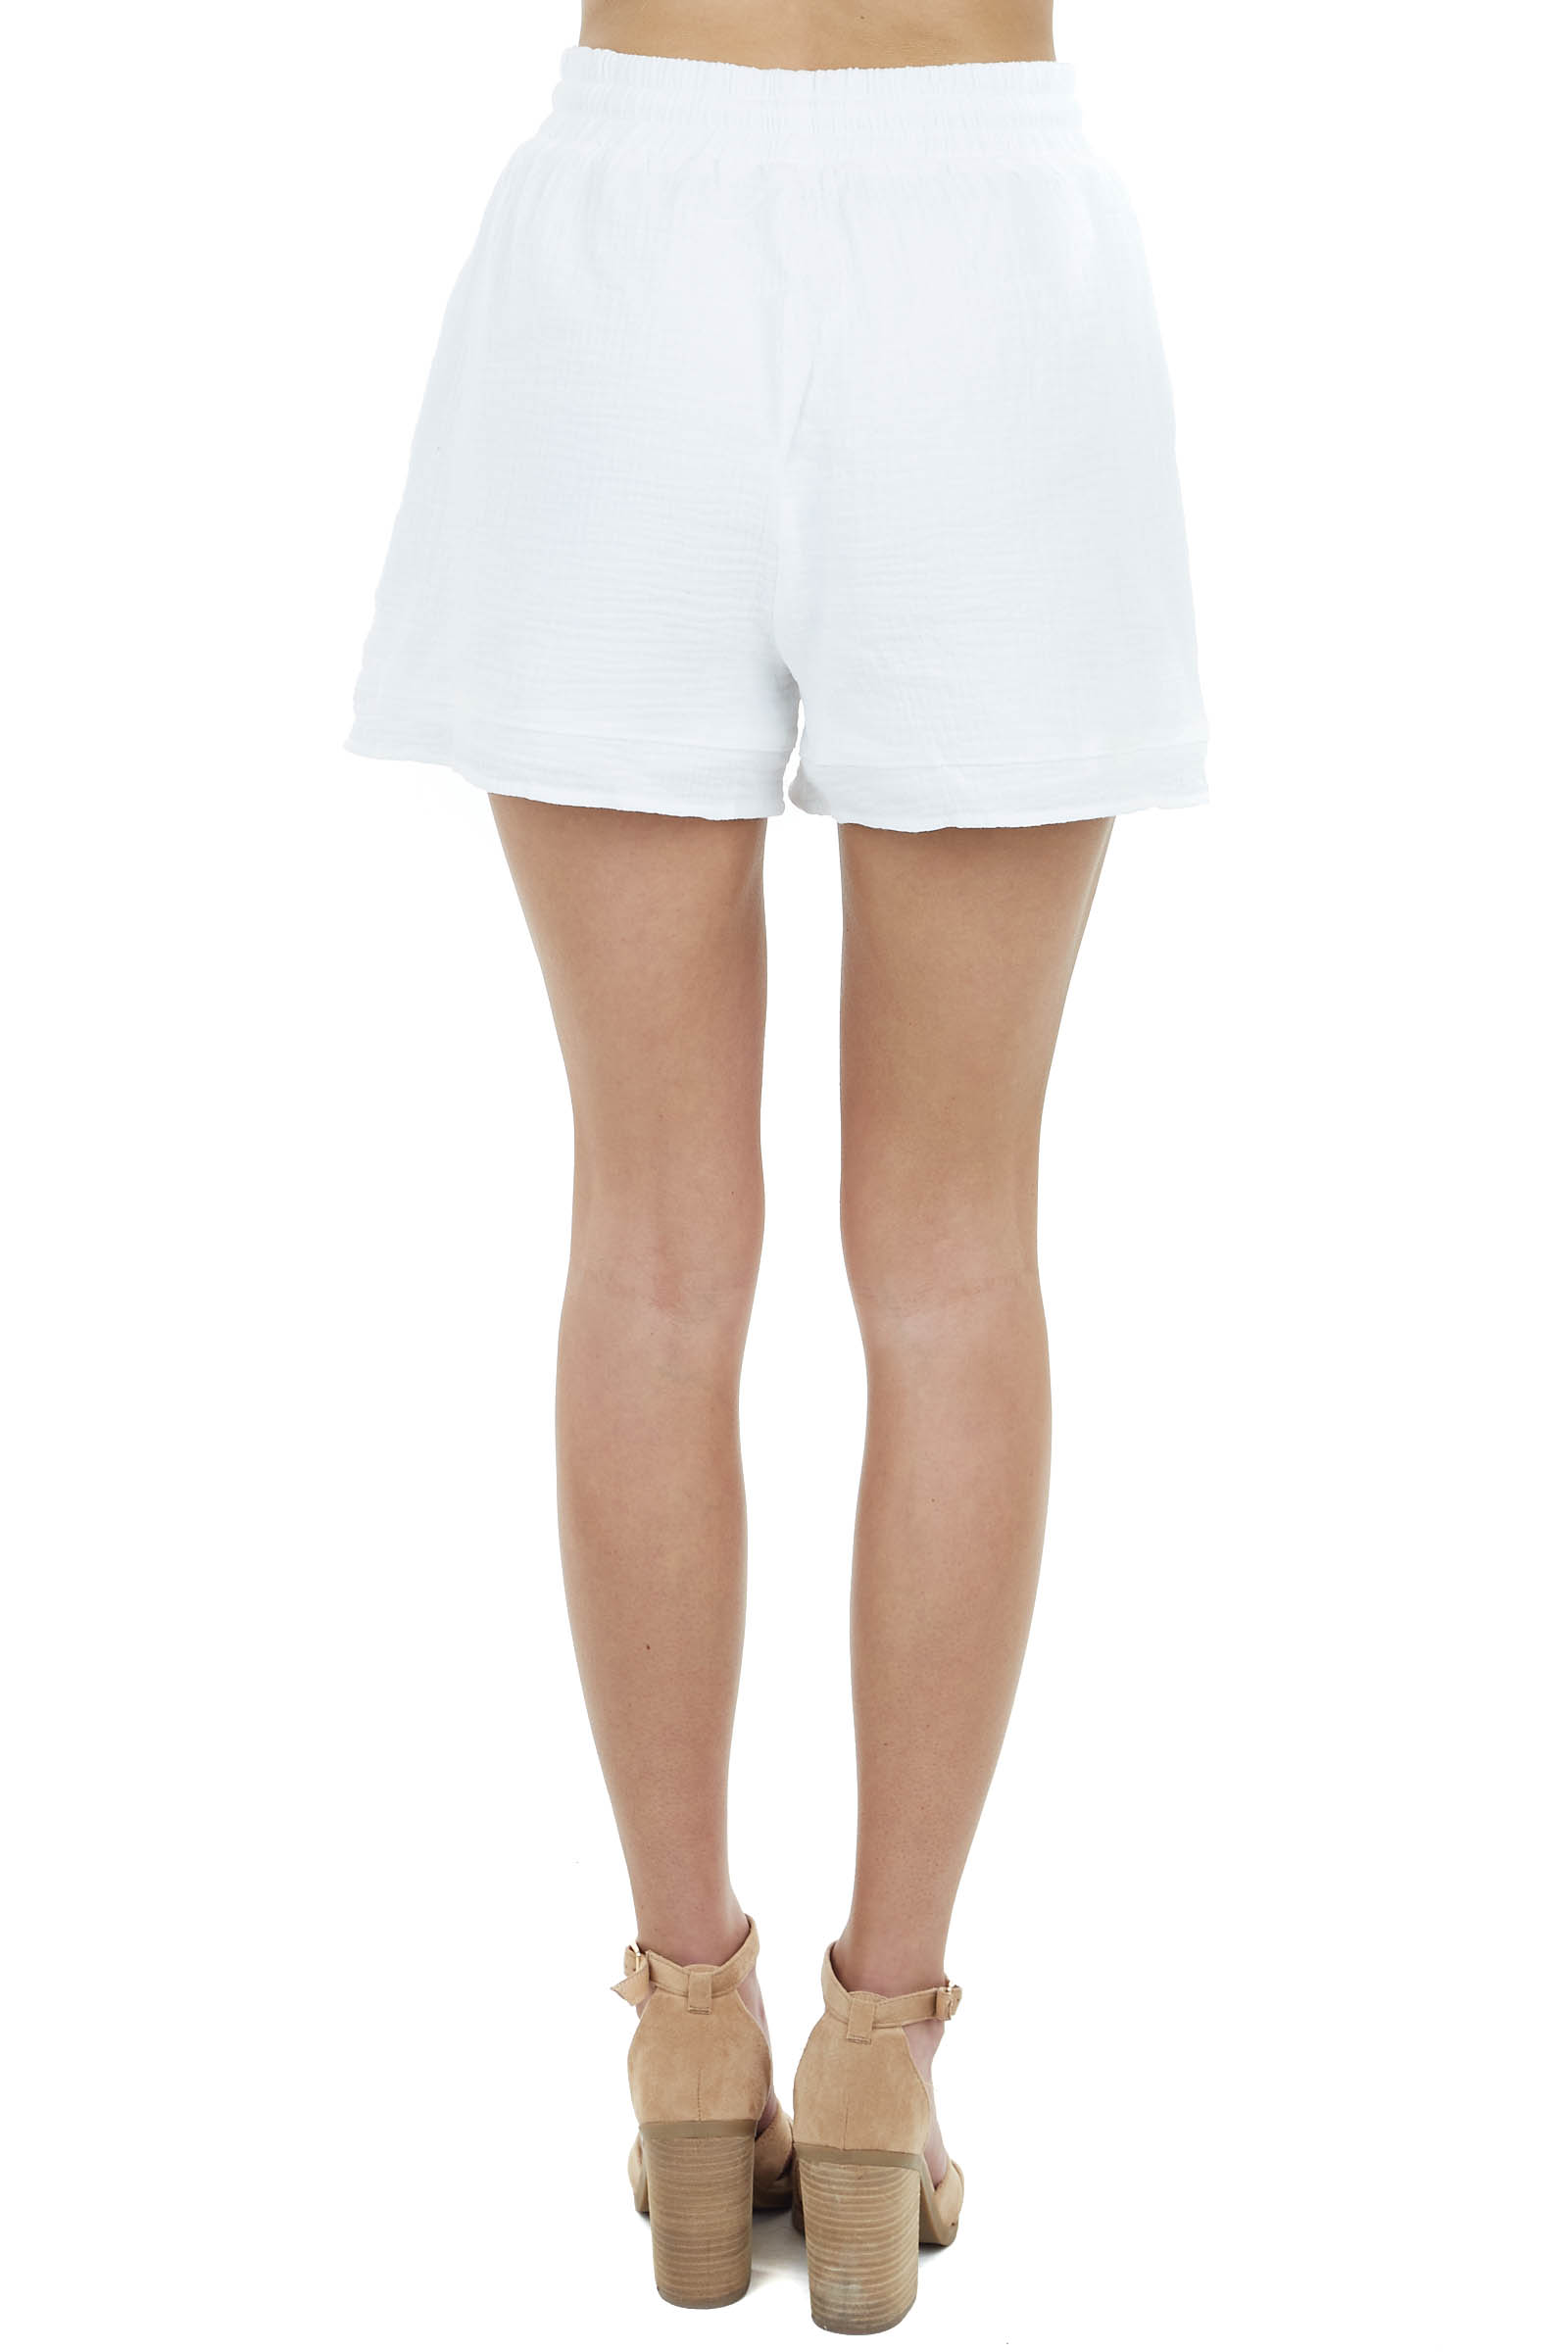 Off White Textured Linen Drawstring Shorts with Pockets